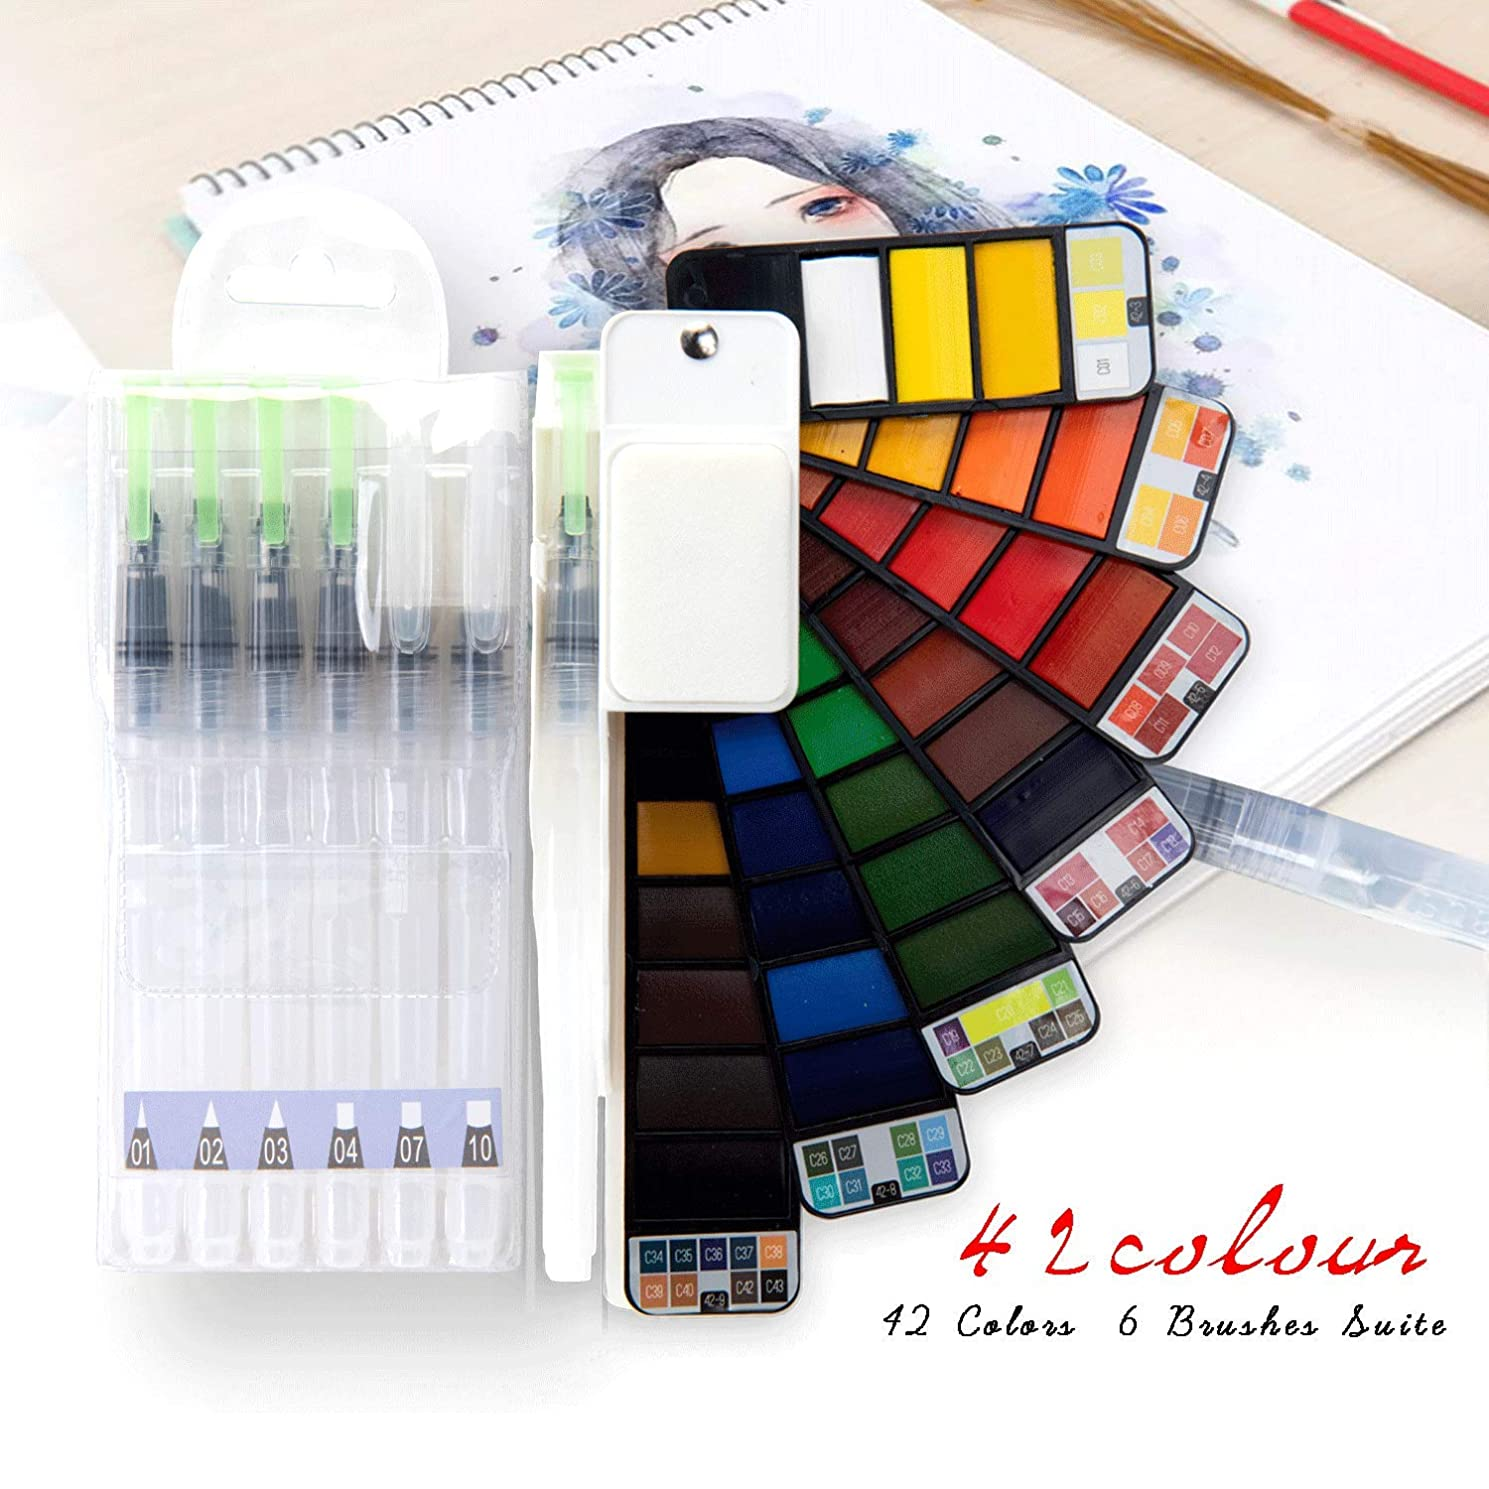 42 Assorted?Watercolor Paint with 7 Brushes Sets - Folding Travel Pocket Field Sketch kit for Kids Adults Draw Outdoor Painting - Perfect Gift